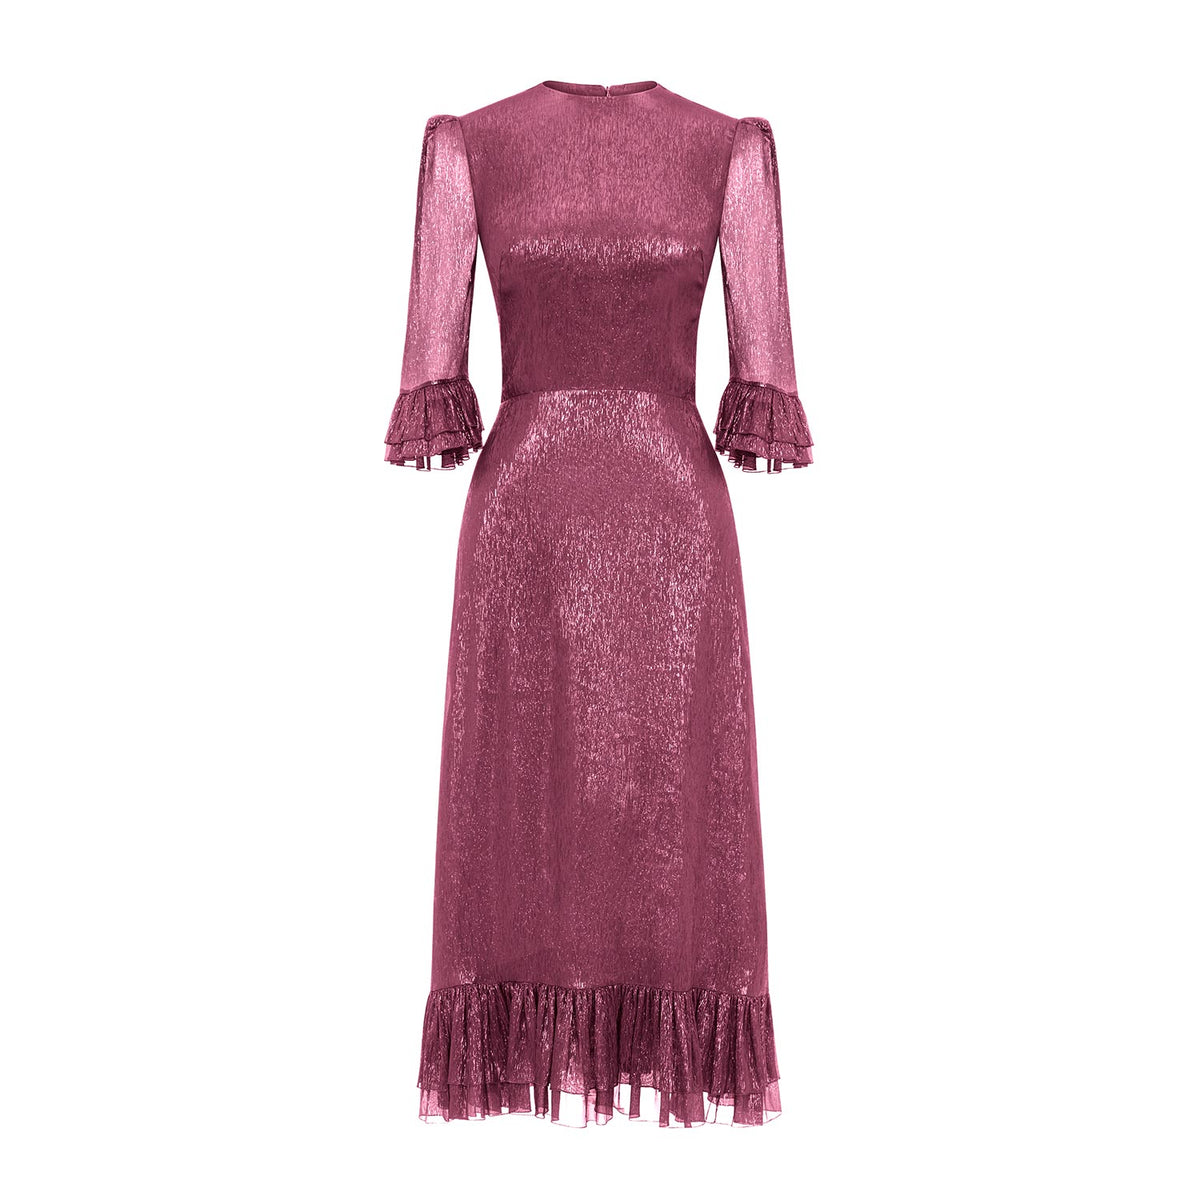 THE FALCONETTI PINK METALLIC SILK DRESS